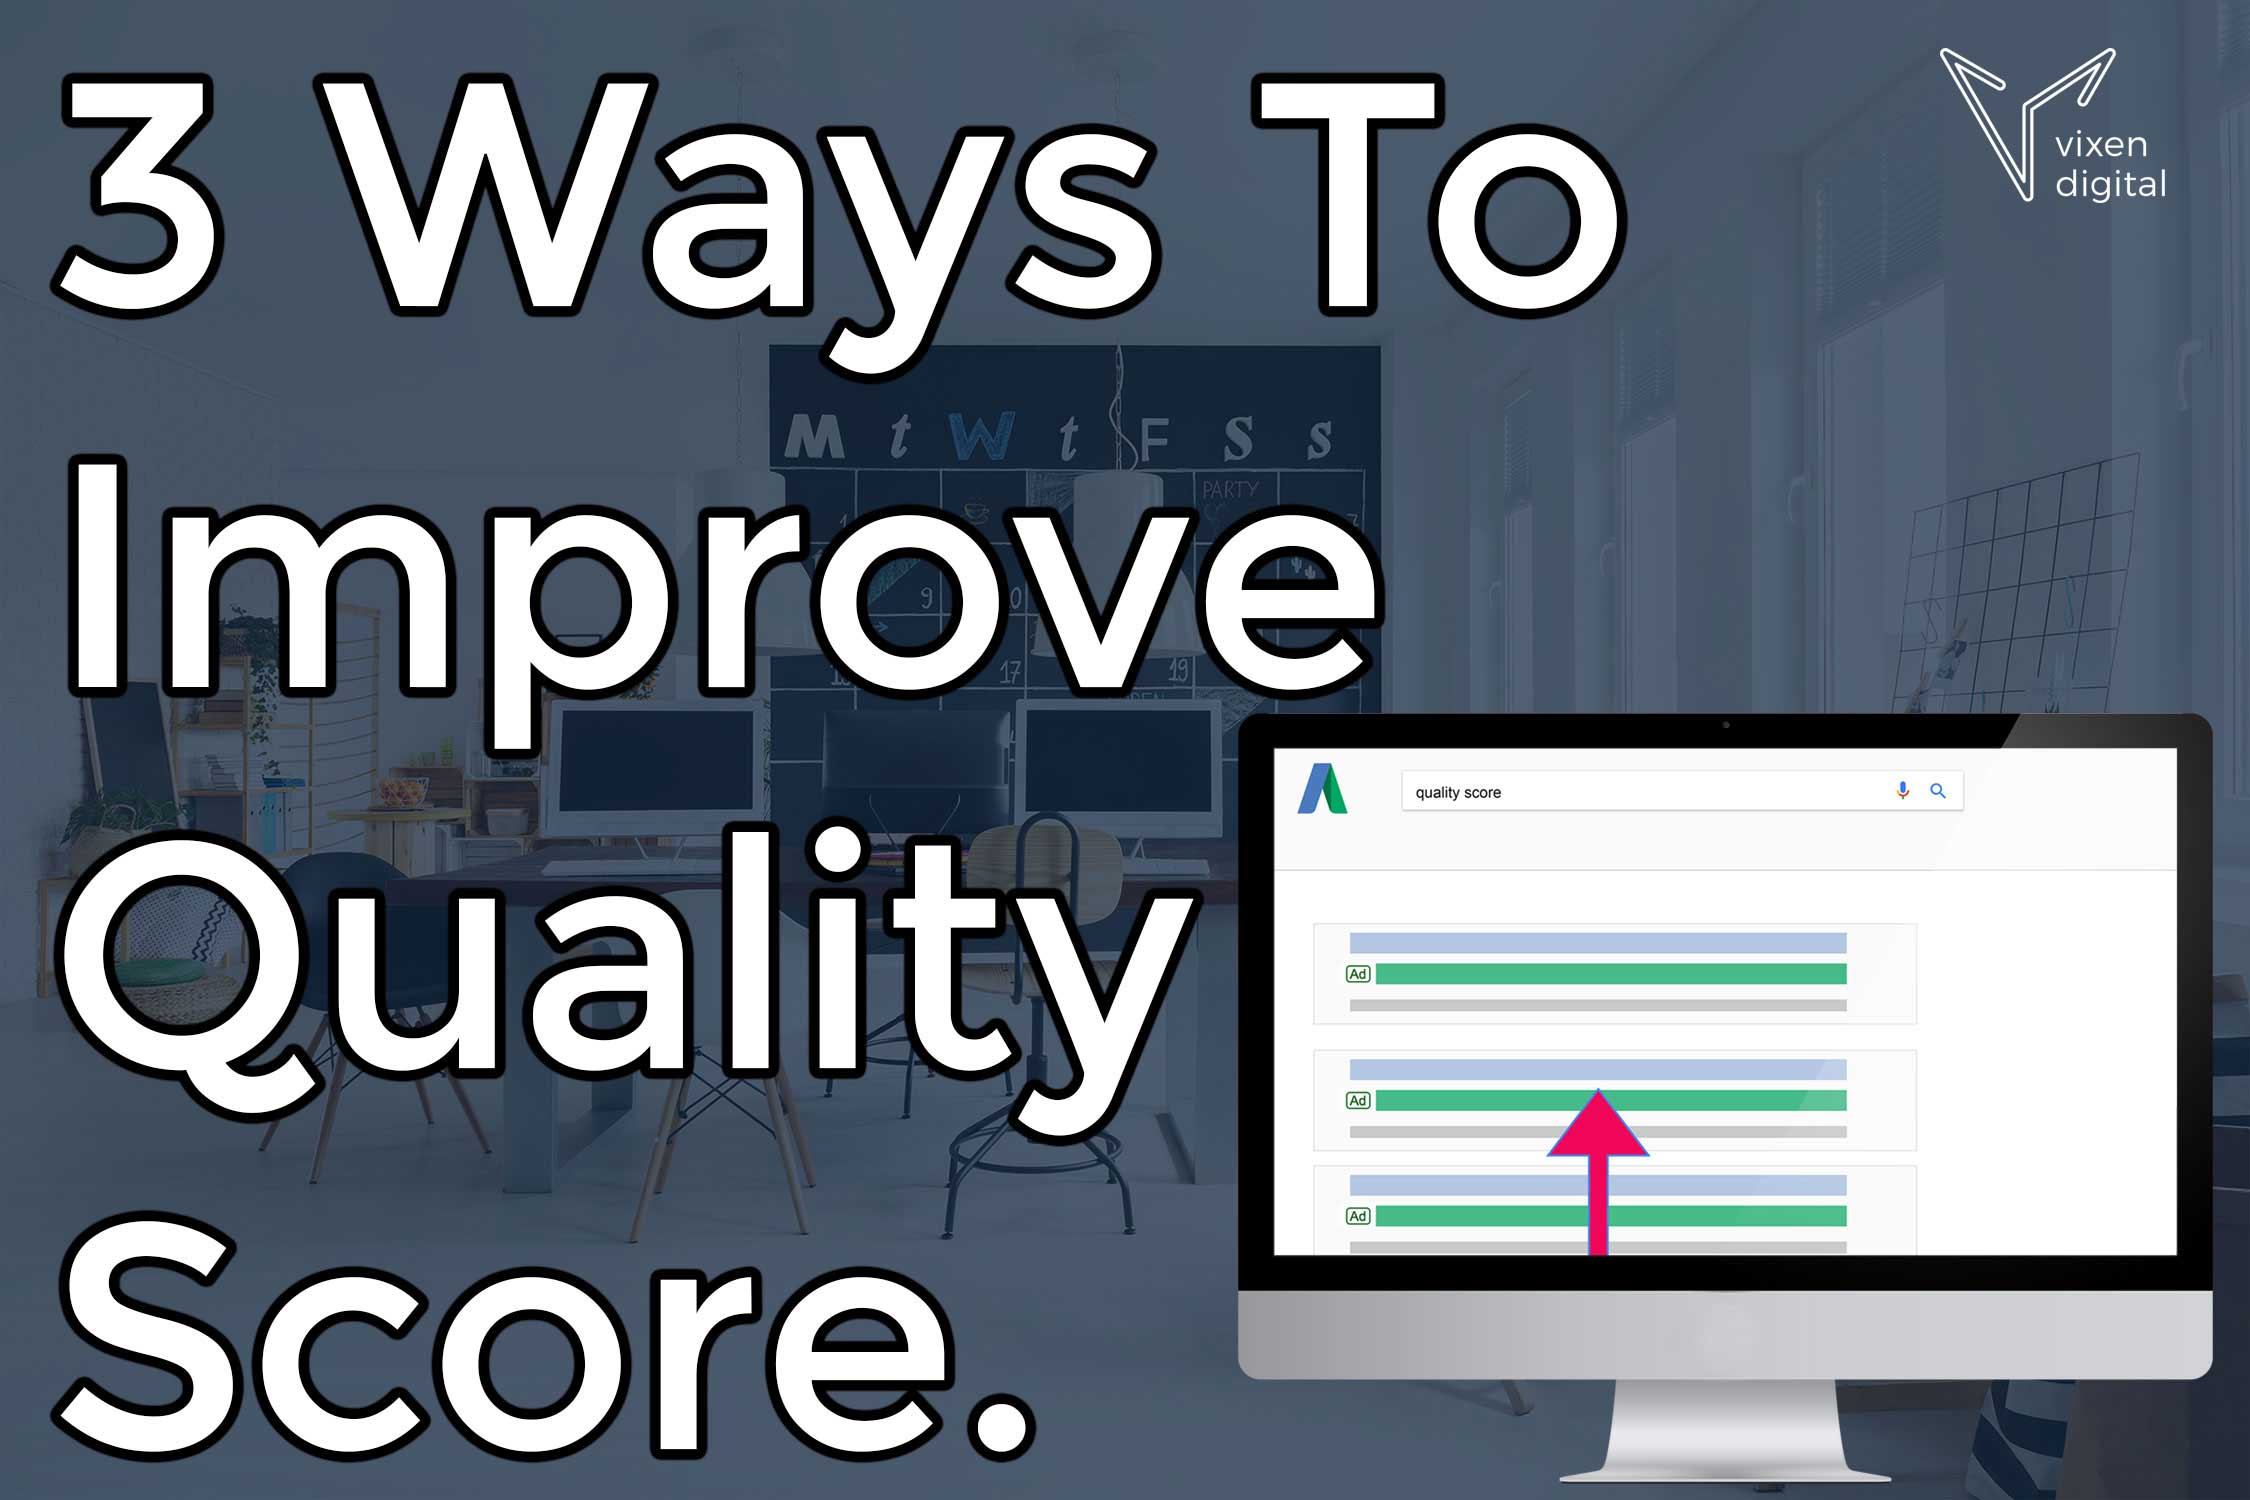 3 ways to improve quality score in Google AdWords. Vixen Digital blog post.